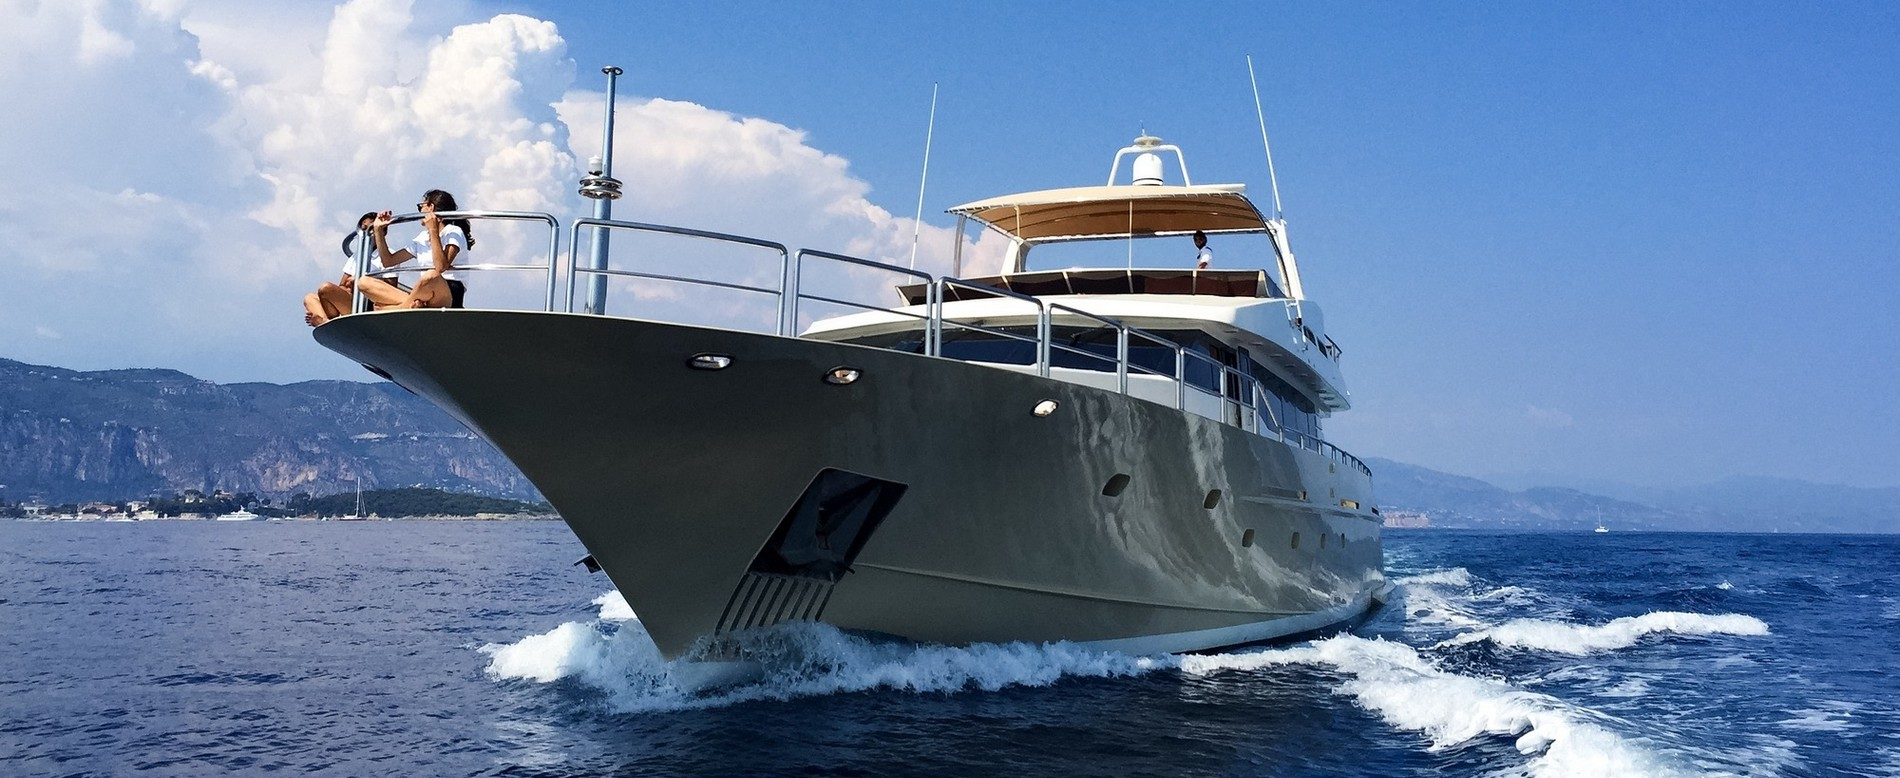 Aegean Builder 31 m (102 ft)